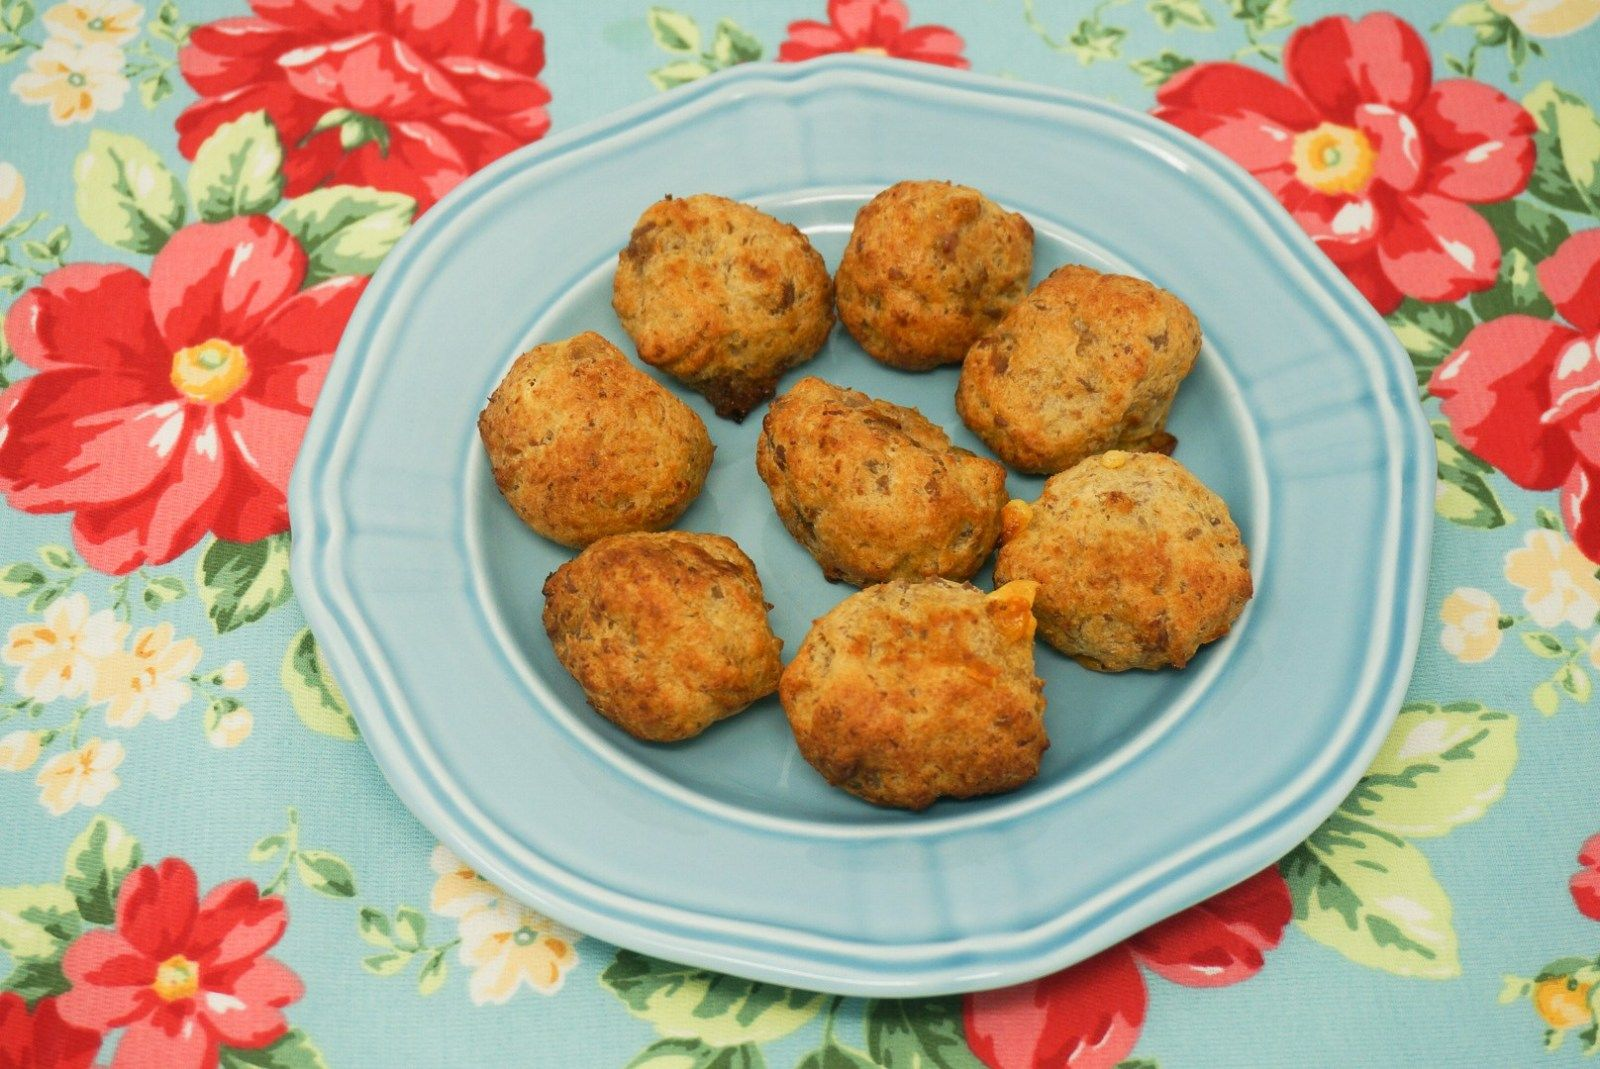 Air Fryer Sausage Balls Recipe Air fryer recipes easy